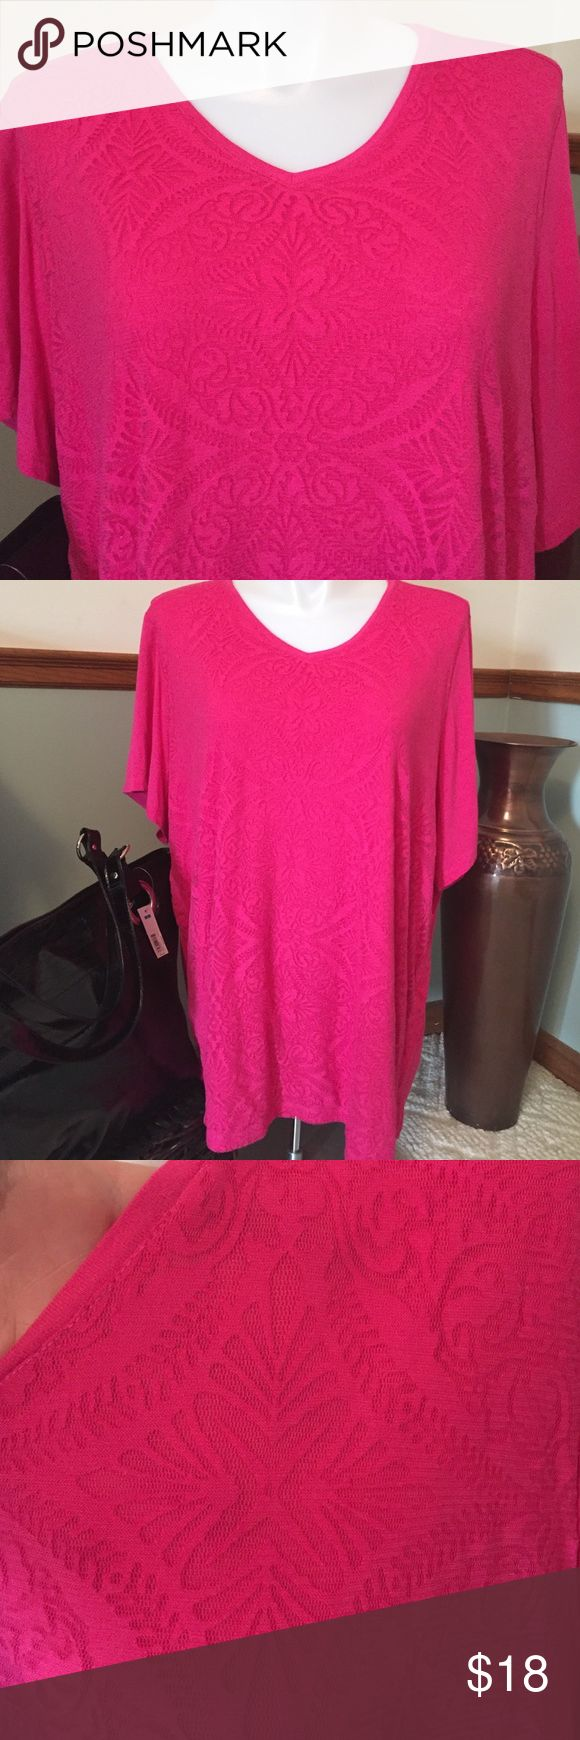 Catherine's pink top 2x 22/24 Very excellent condition pink short sleeve top Catherines Tops